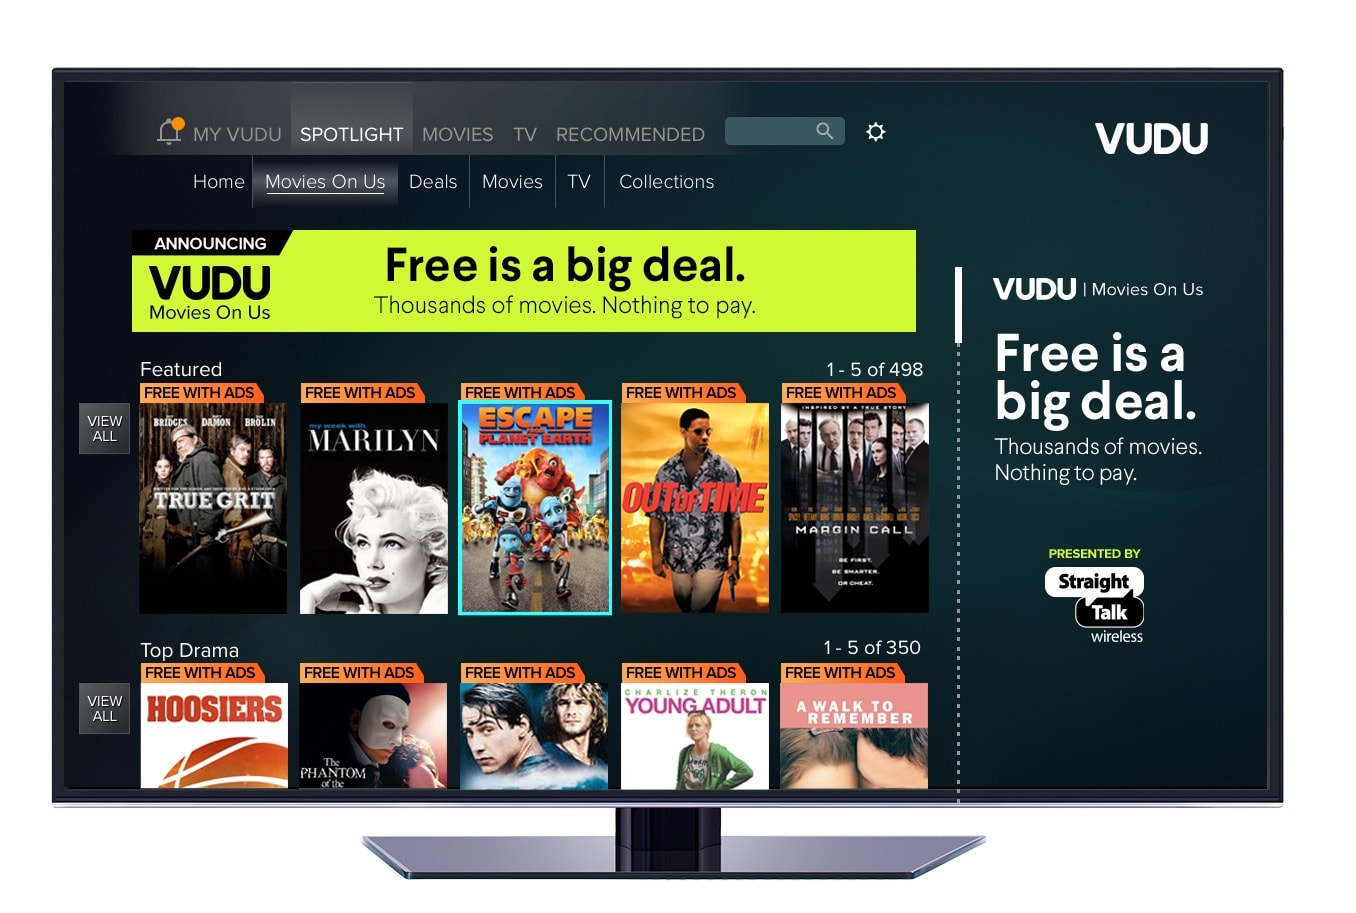 Vudu offers ad-supported movies 'on us'